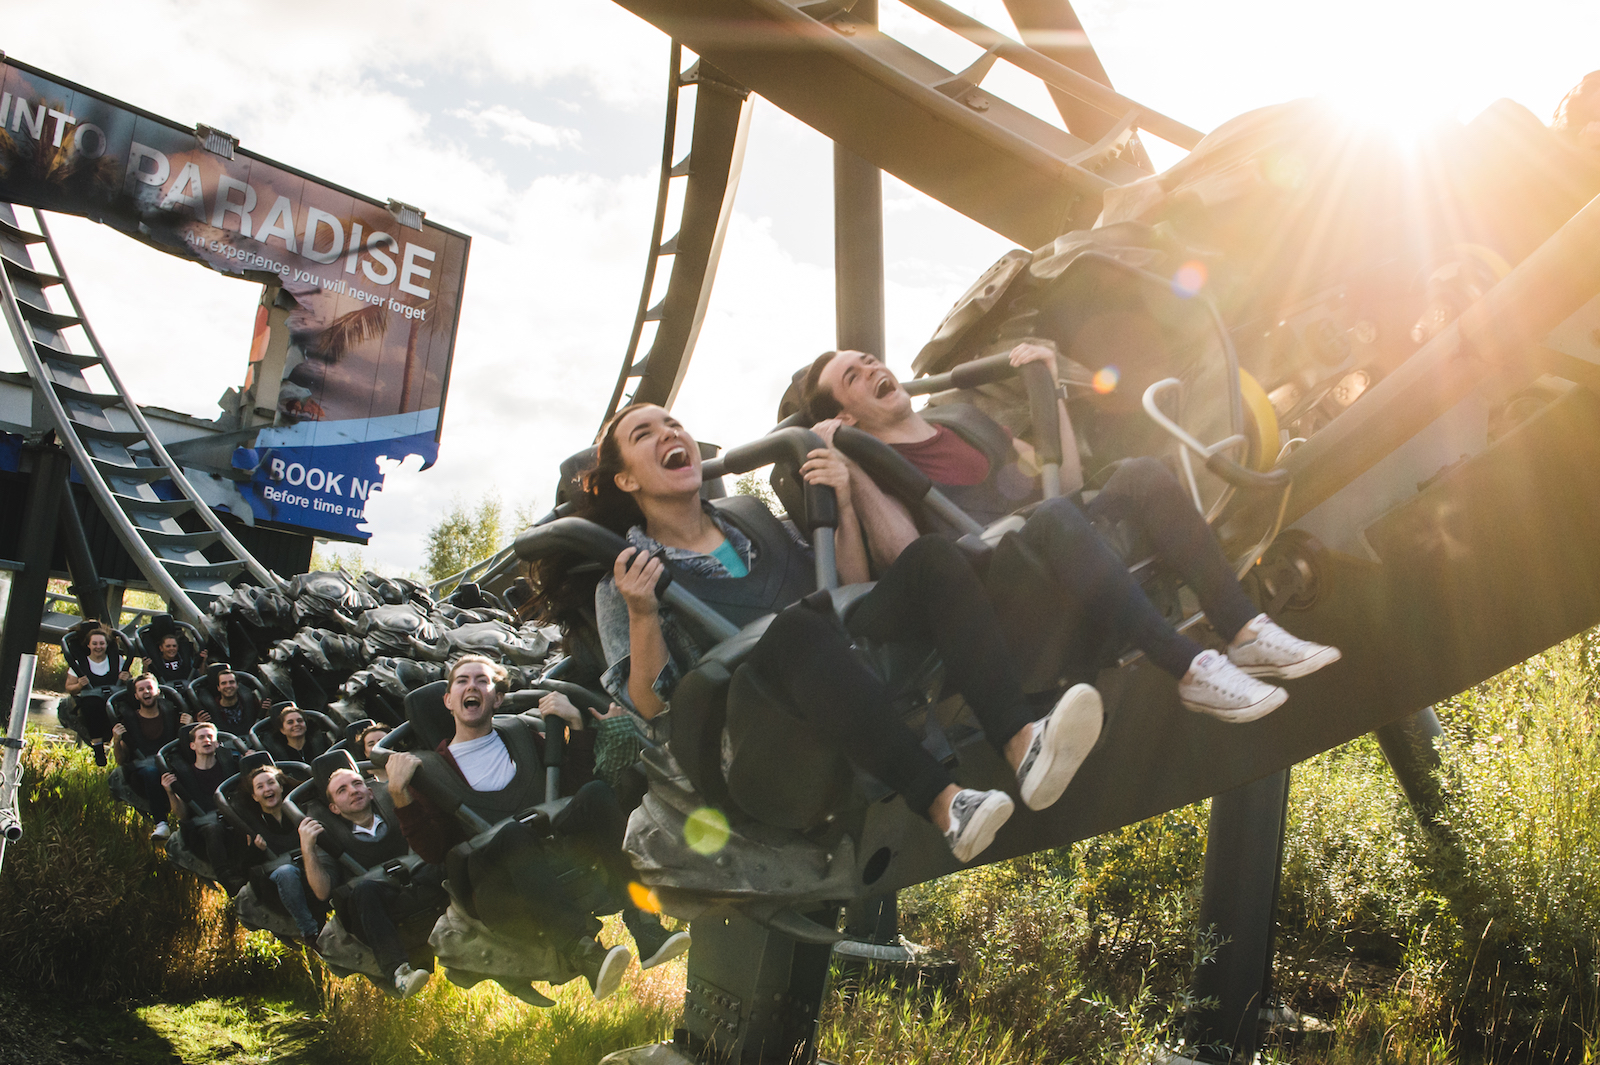 swarm wing coaster thorpe park best themed roller coasters